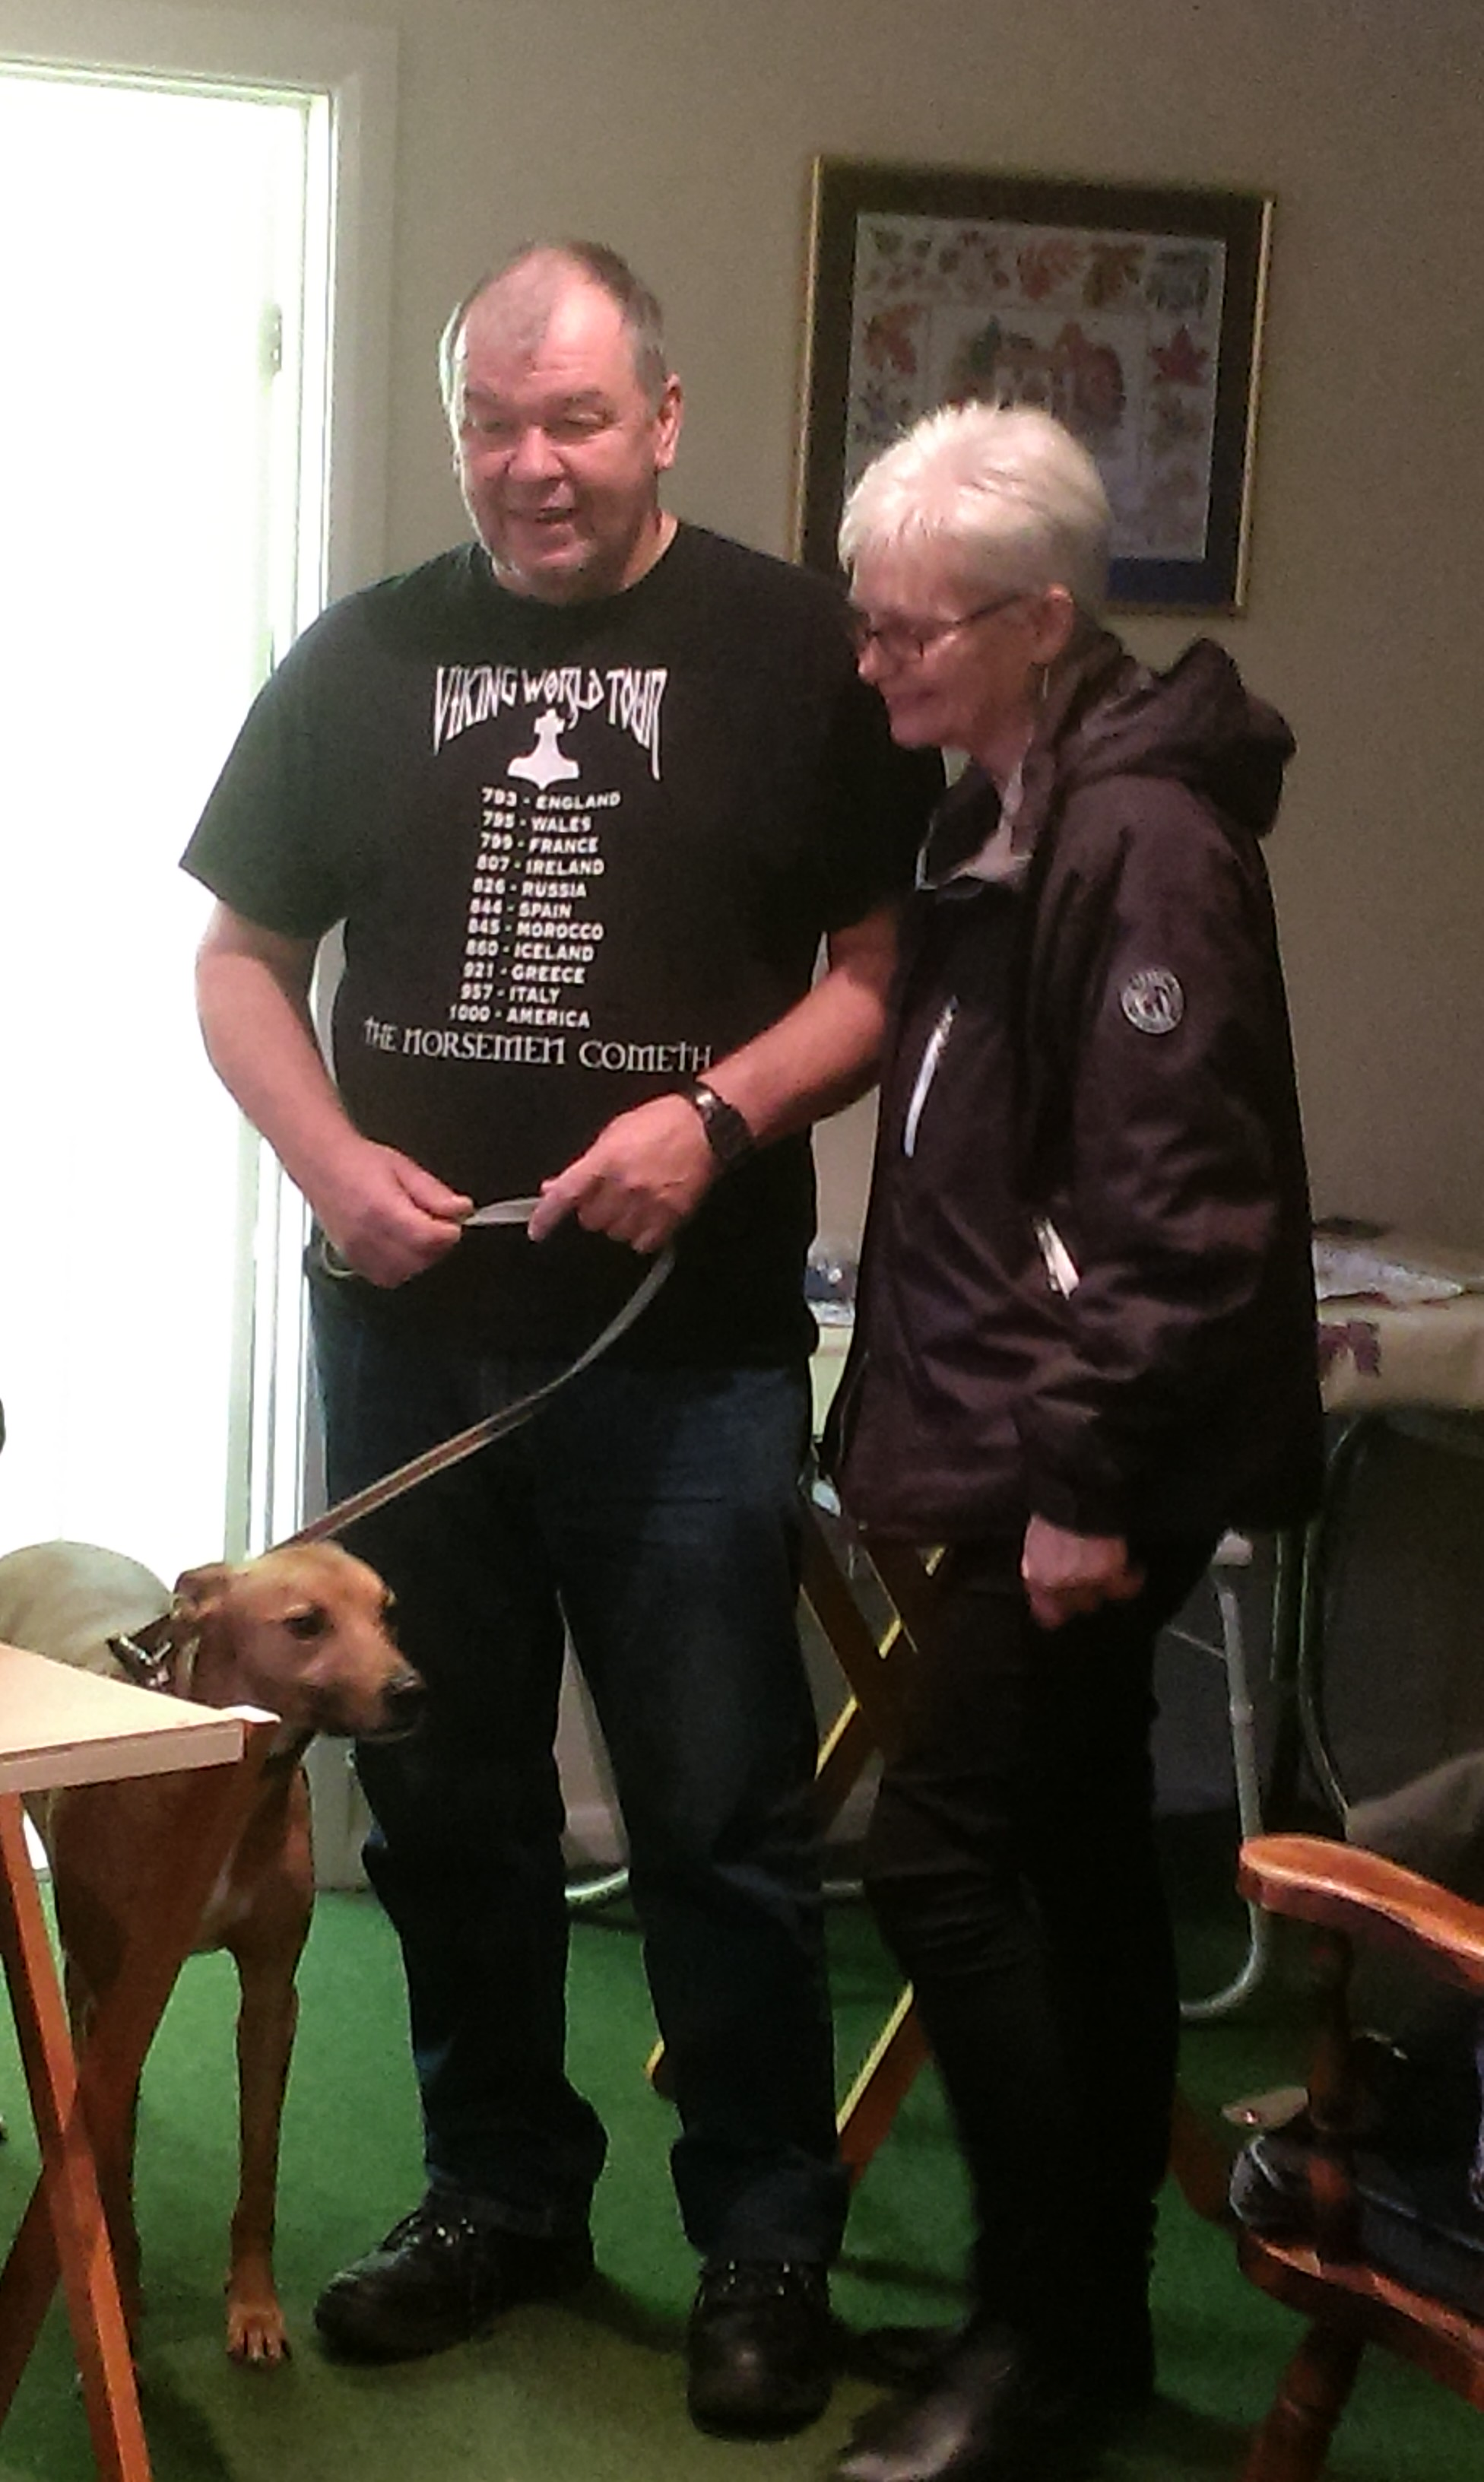 Tom, his wife Theresa, and their dog Toby, at a tapestry project meeting